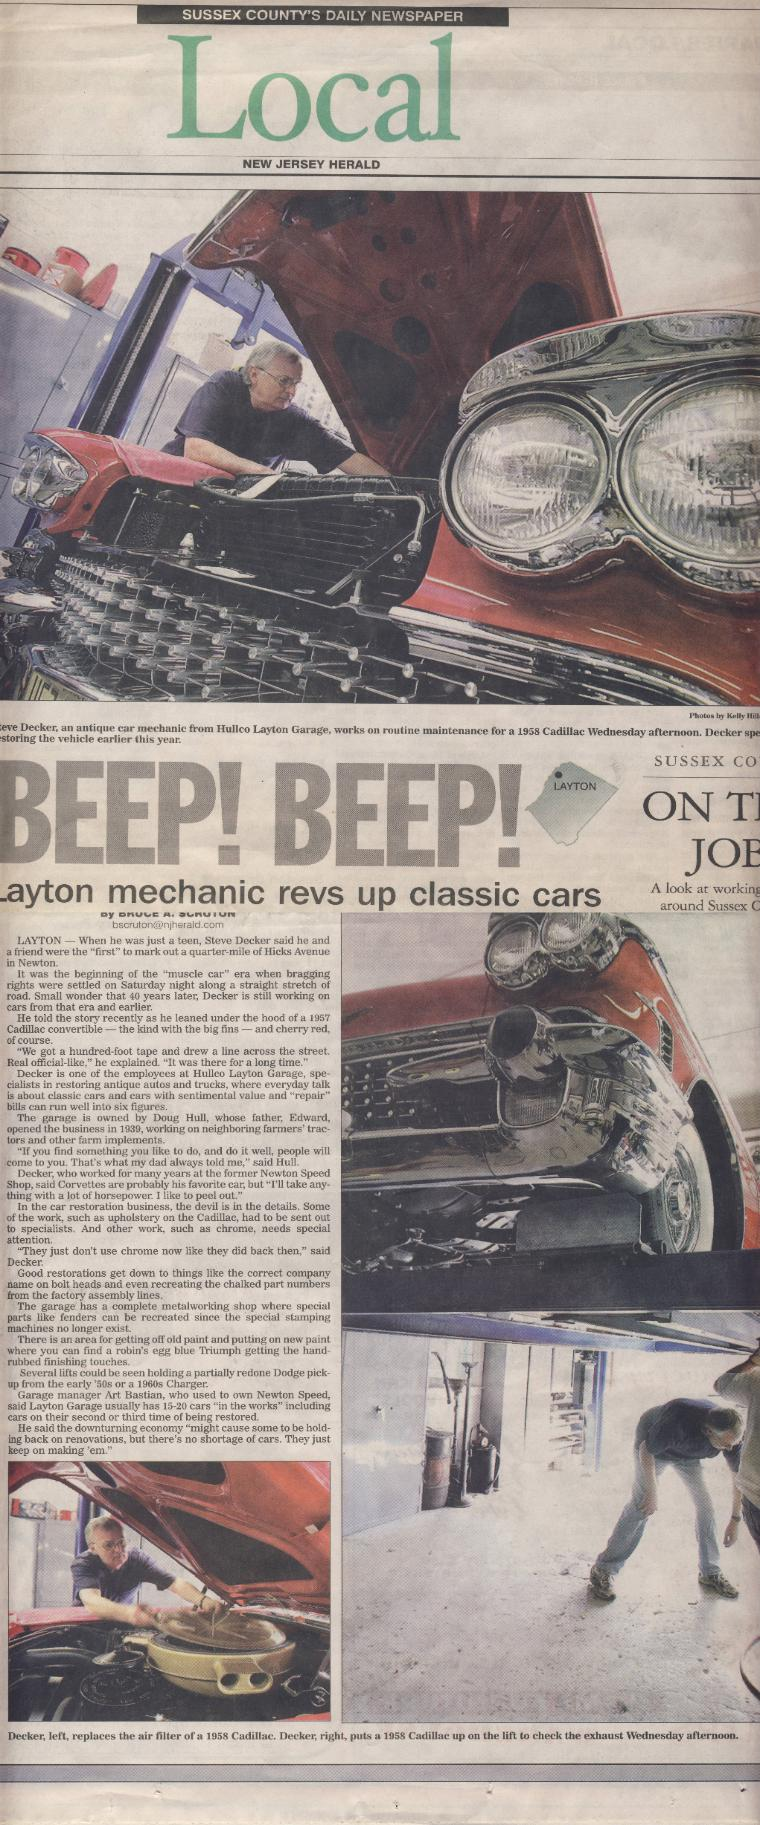 New jersey sussex county layton - In The News For Our Expert Automotive Shop In New Jersey Hullco Layton Garage Nj